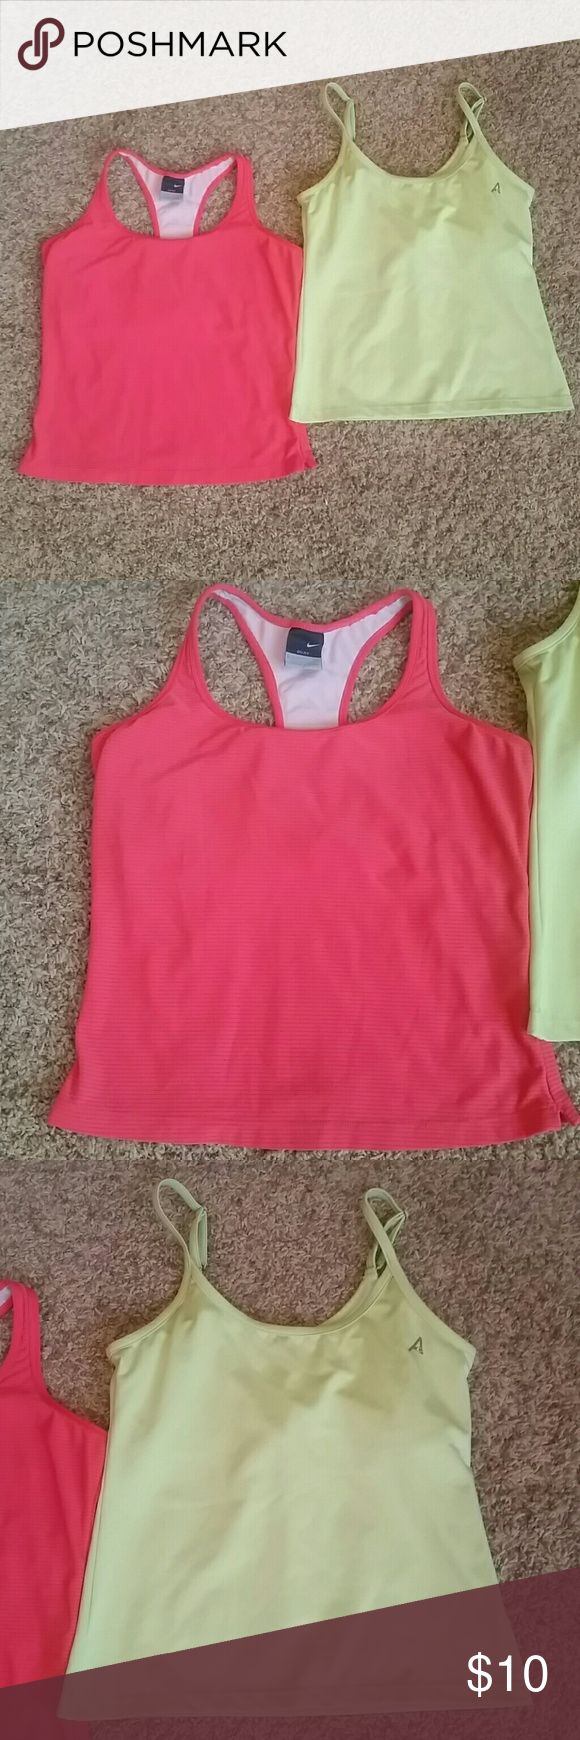 BUNDLE of 2- Workout Tops Nike DriFit Coral razorback top with built in bra Size- L Club Attiyo Green shirt with built in bra and adjustable straps Size -M Both in great shape Tops